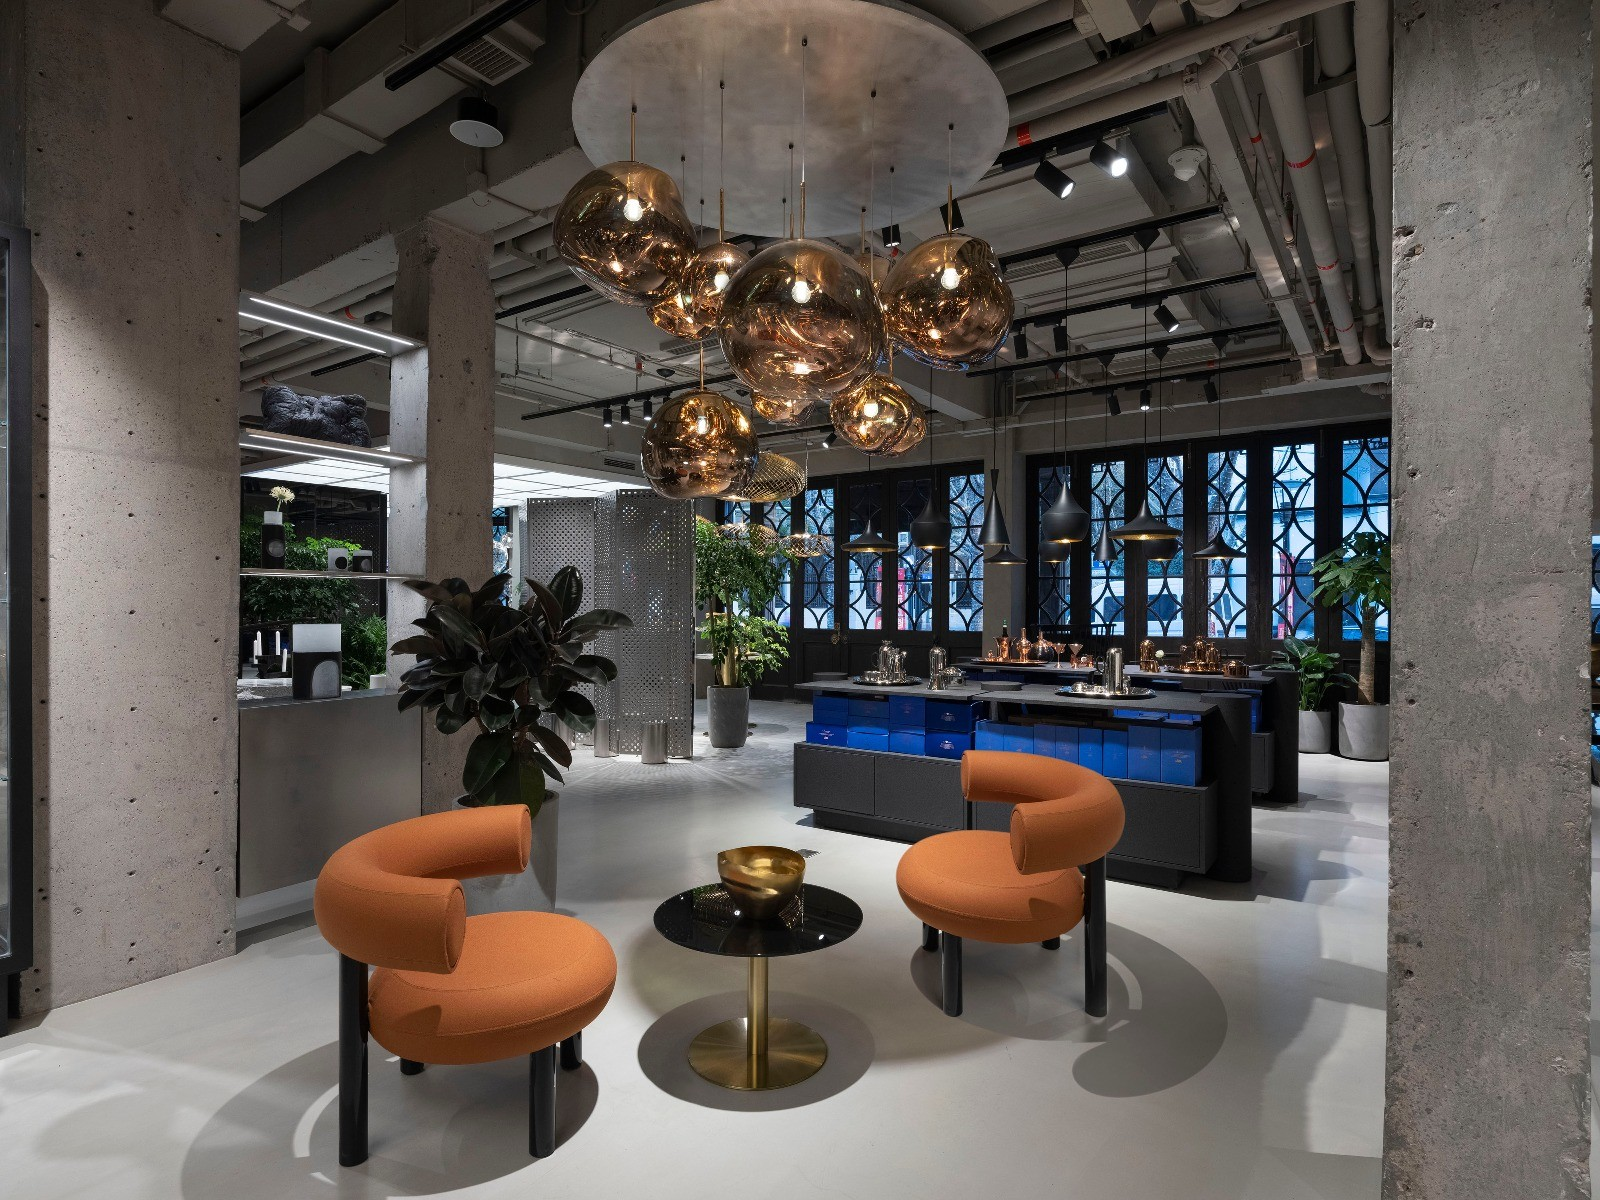 Tom Dixon Fat Chairs and Melt Pendants